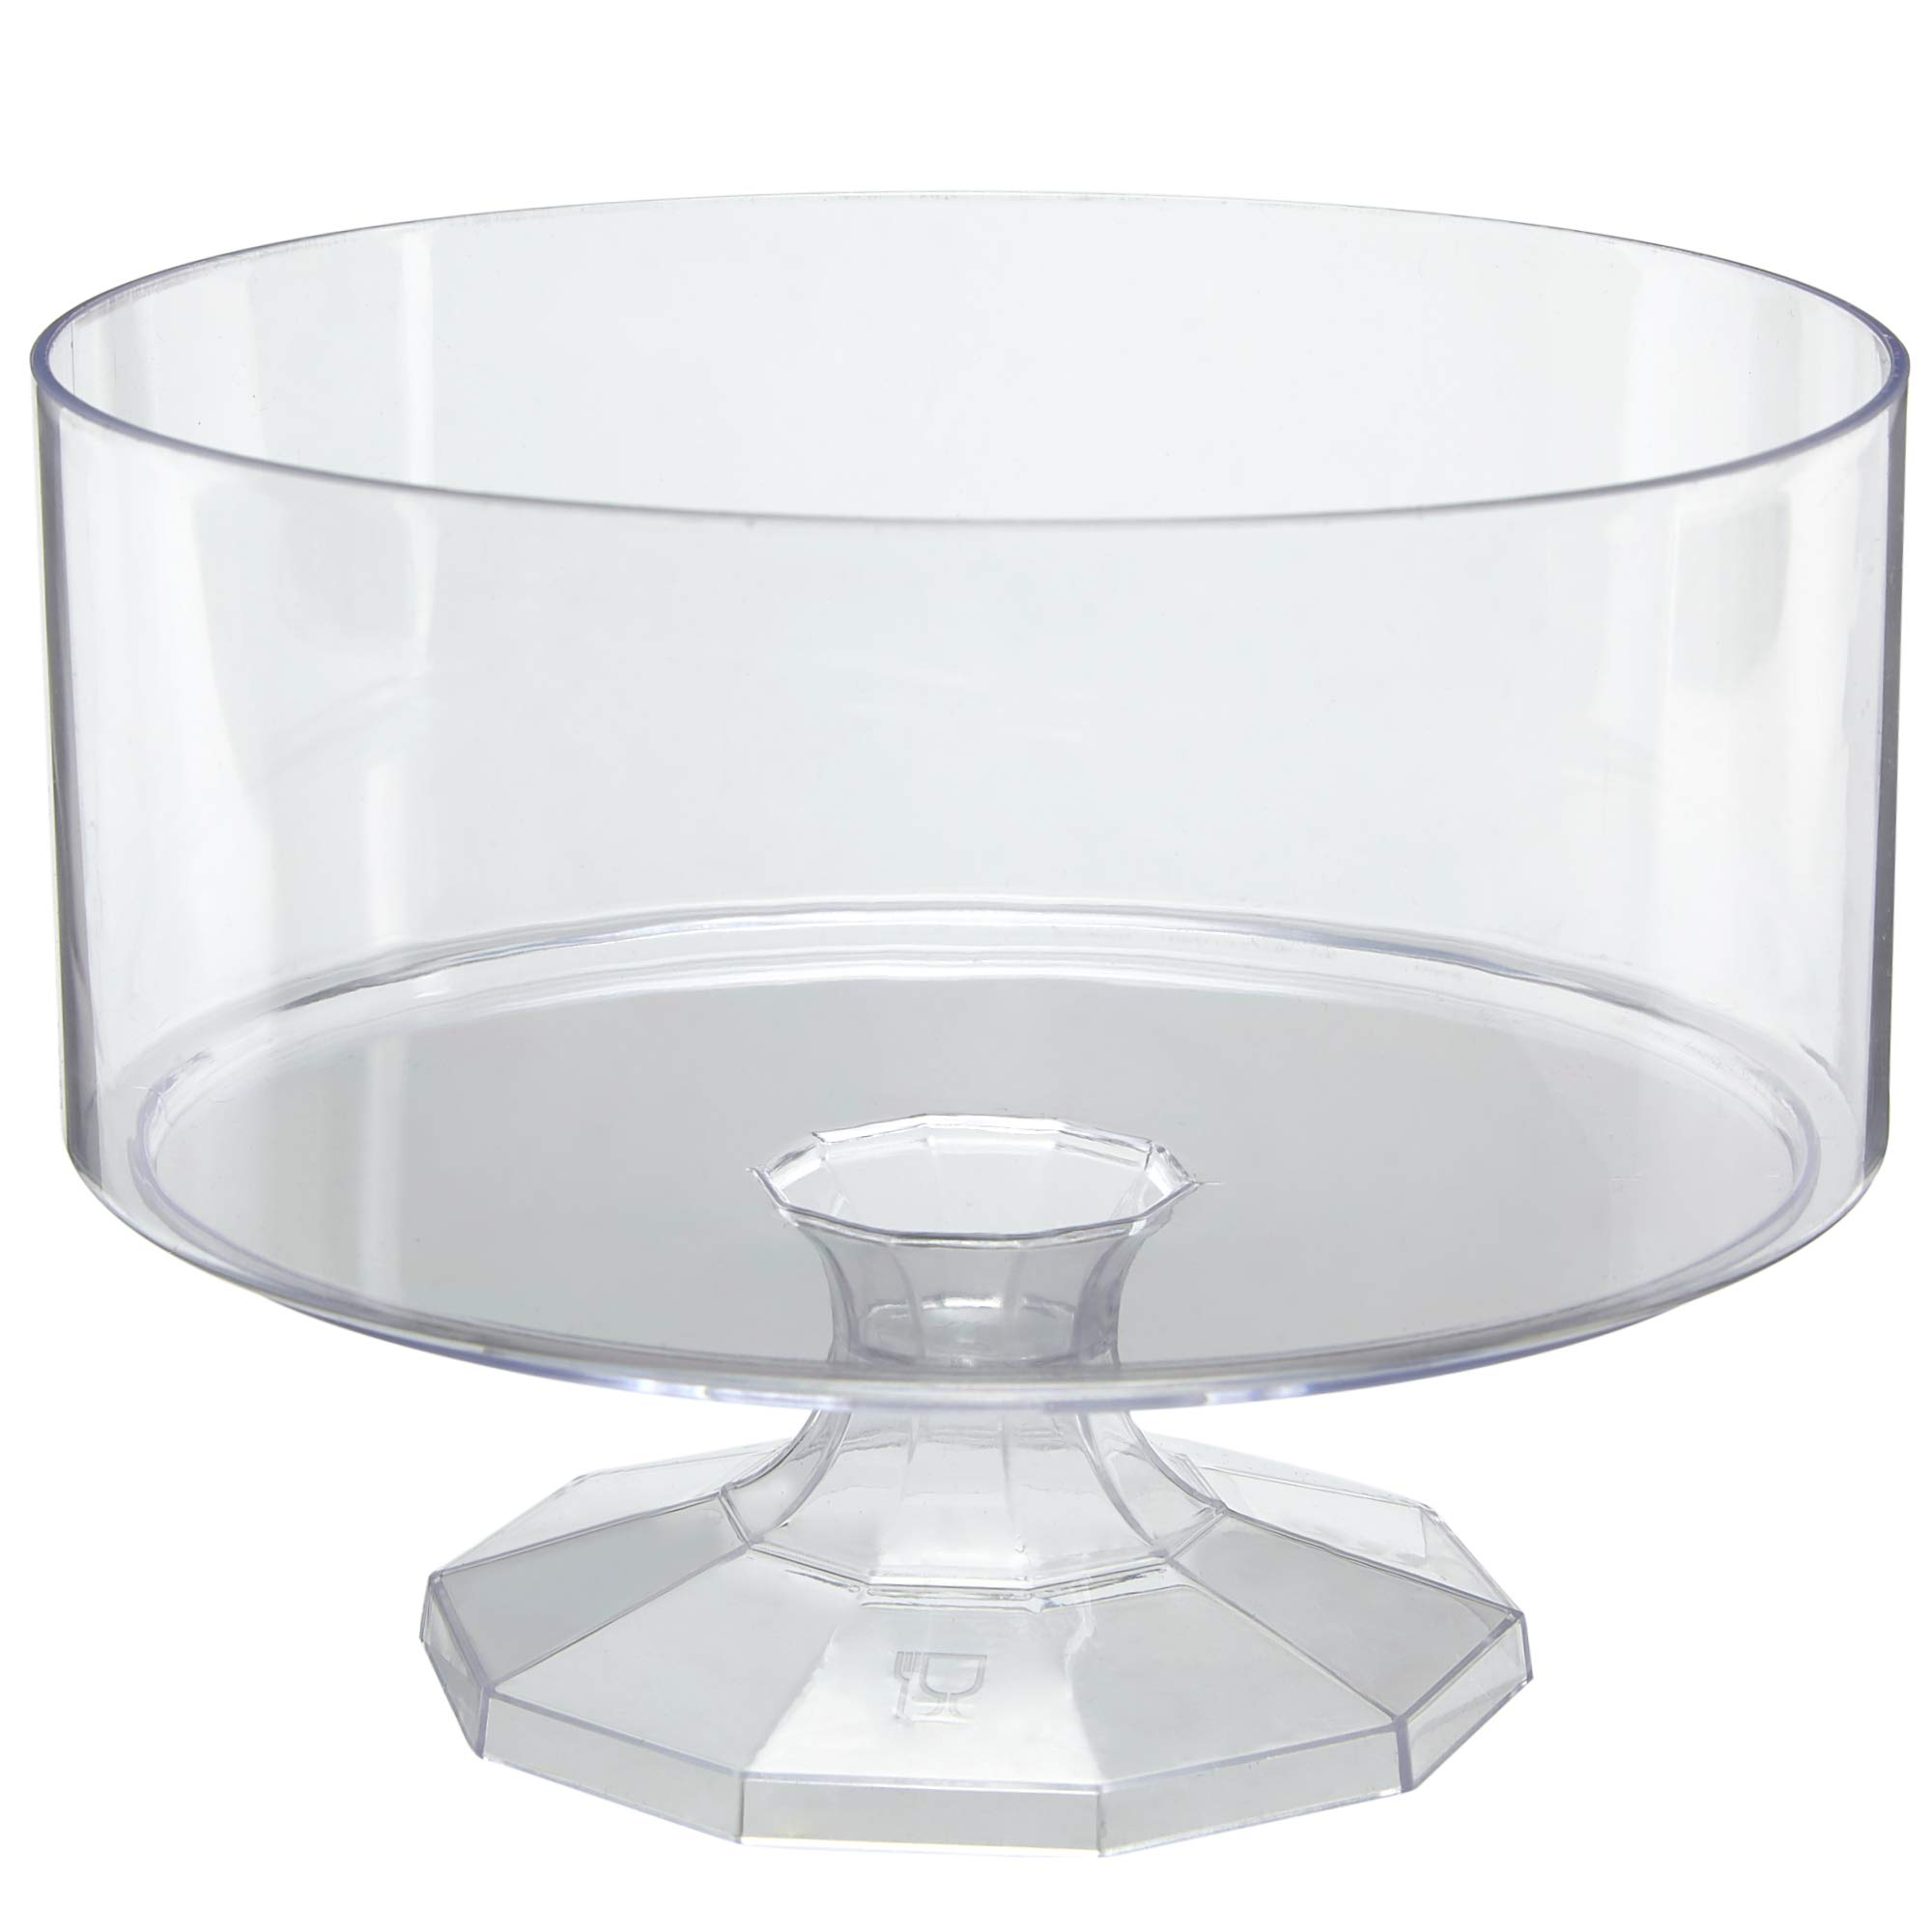 "Disposable Pedestal Trifle Bowl, 3 Pack – 8"" Round Clear Elegant Plastic Food and Dessert Server With Decorative Base for Buffet Tables, Parties and Events - Ultra Durable and Reusable - by Prestee"